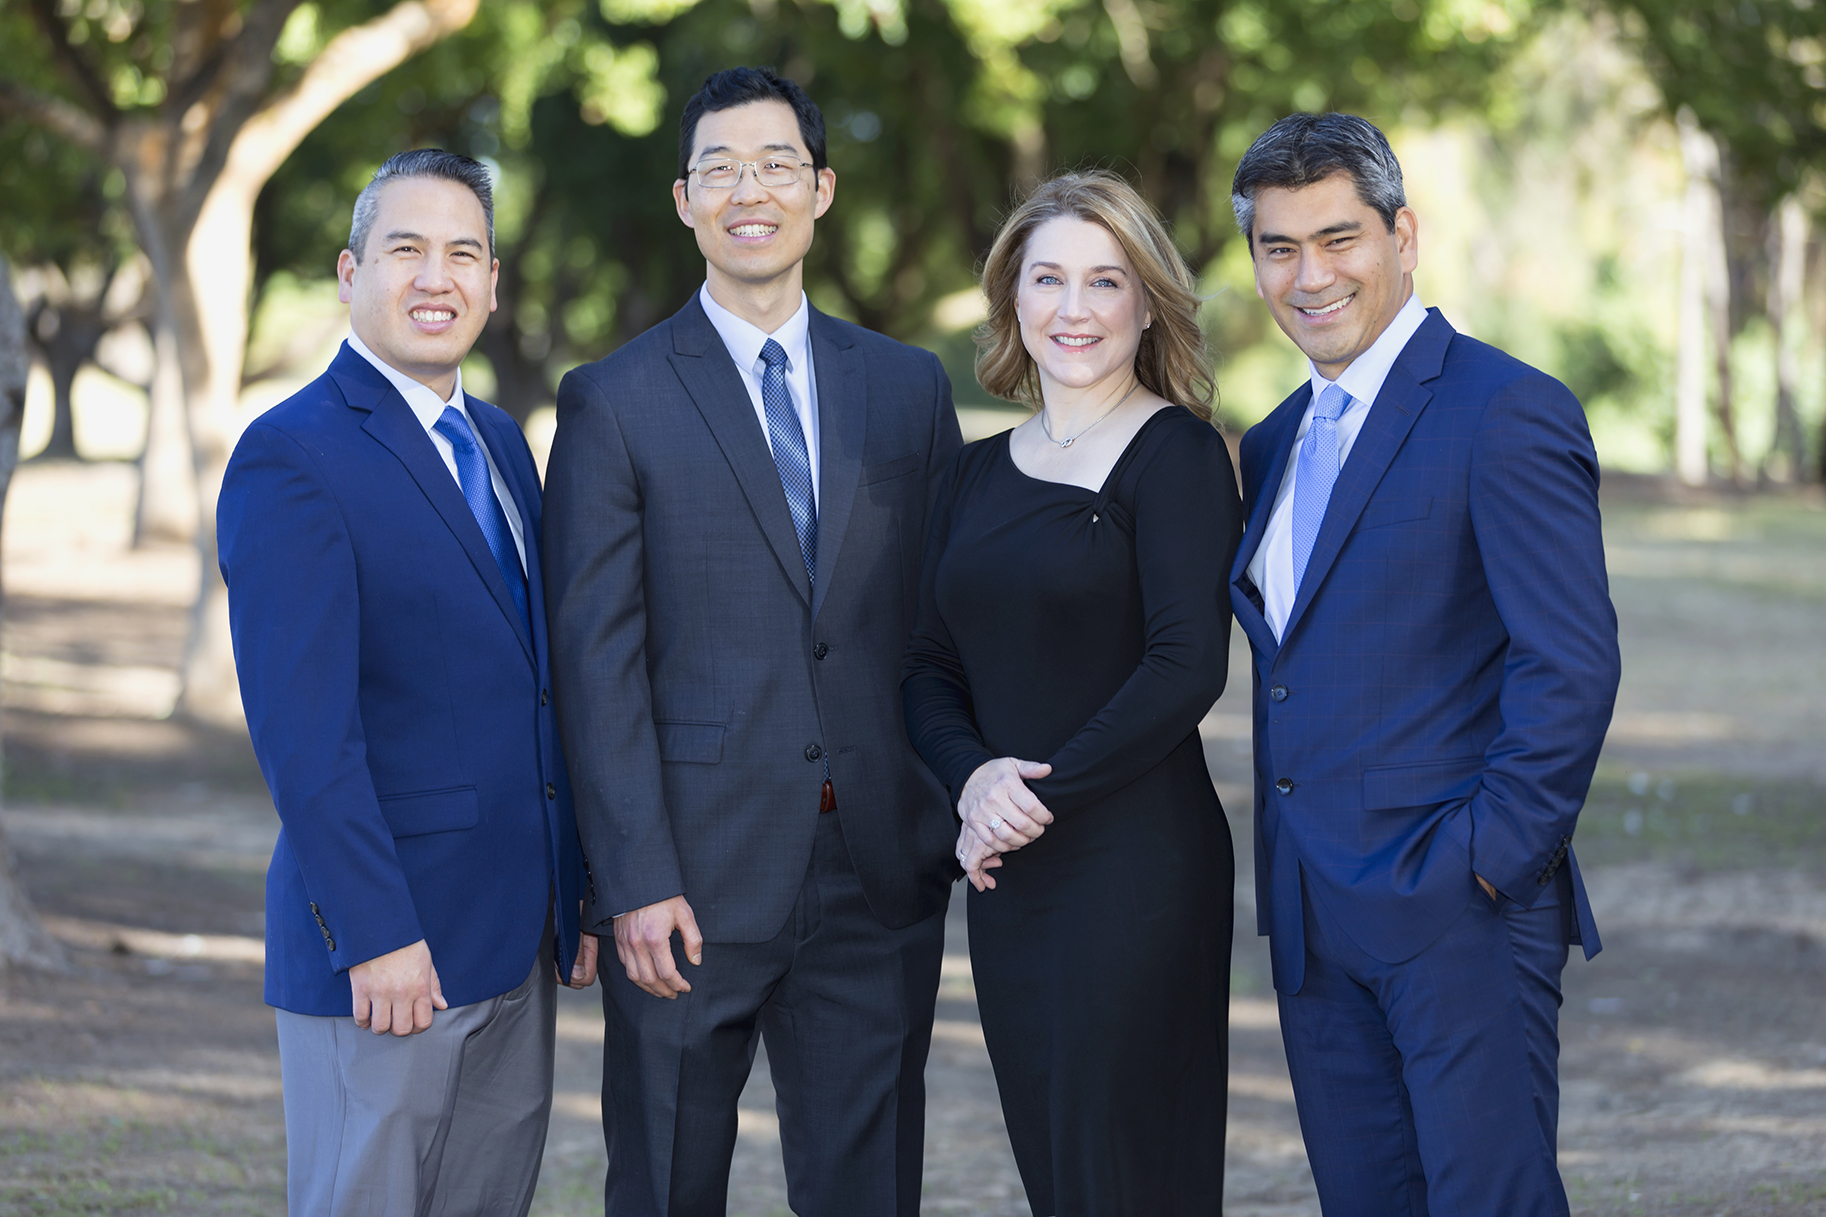 Allen T. Chien, DDSBrian Huh, DMDShannon Barnhart, DDSArdavan Kheradpir, DMD, MD - Focused on excellence in oral surgical care and the patient experience.